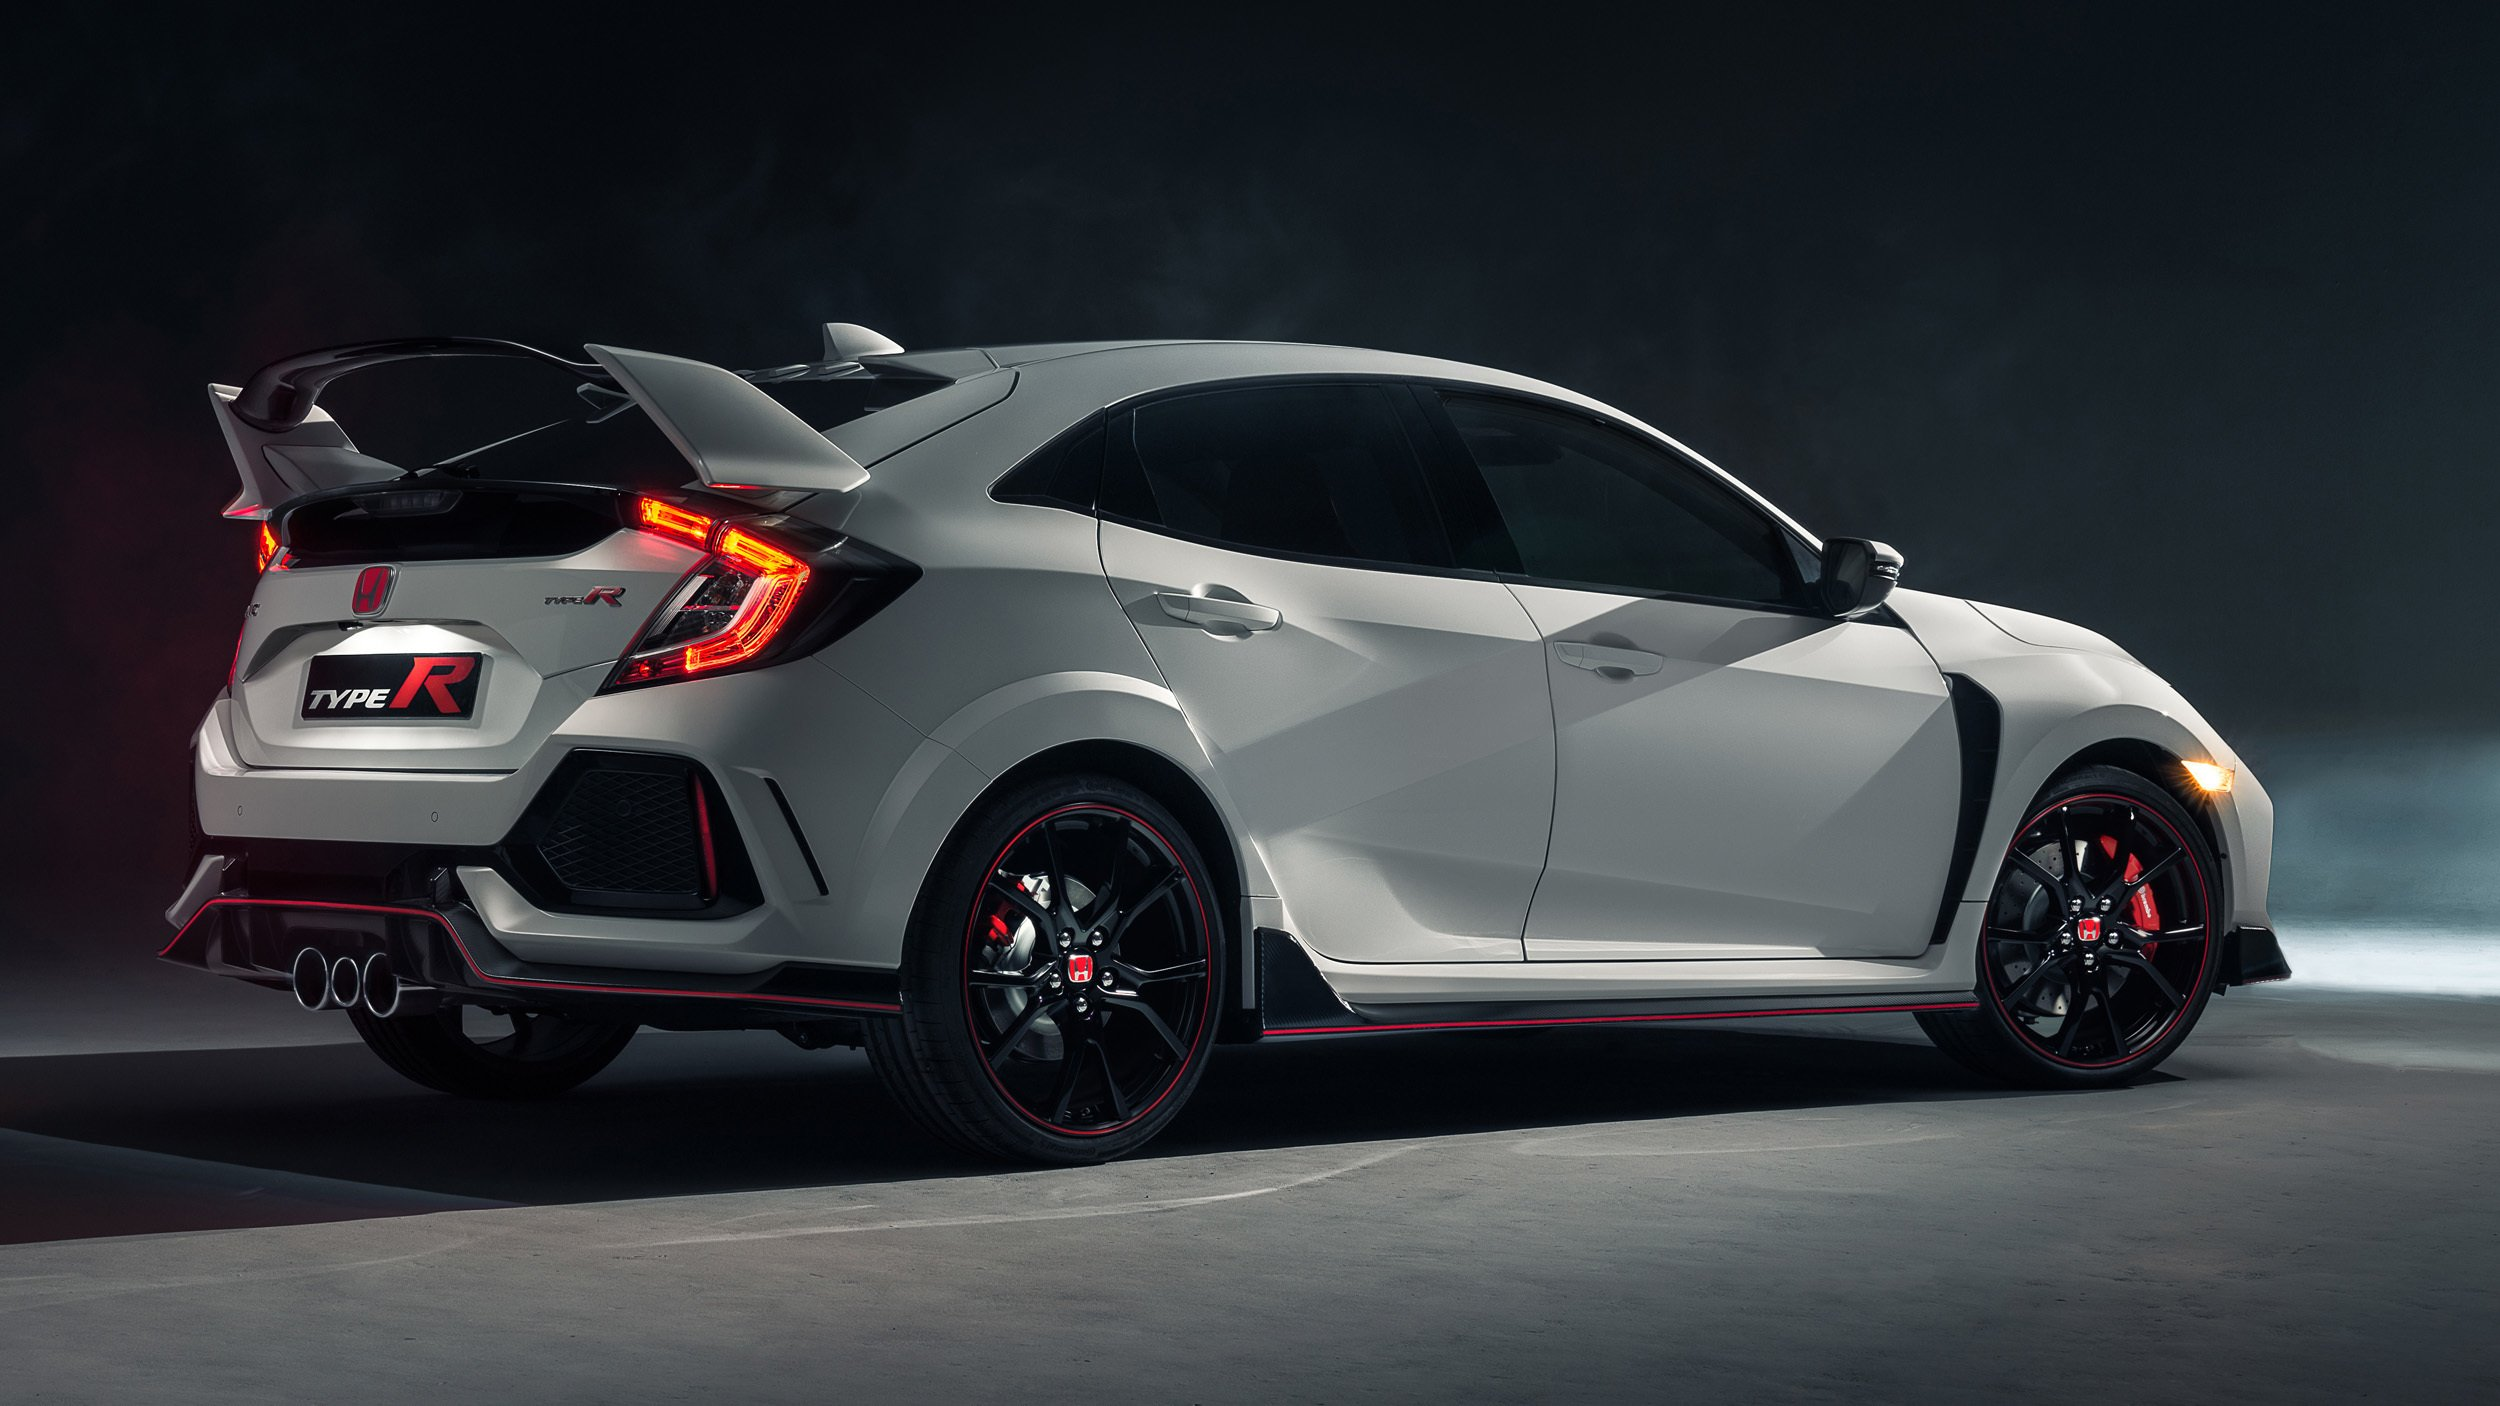 2017 honda civic type r revealed in geneva here later this year photos 1 of 14. Black Bedroom Furniture Sets. Home Design Ideas